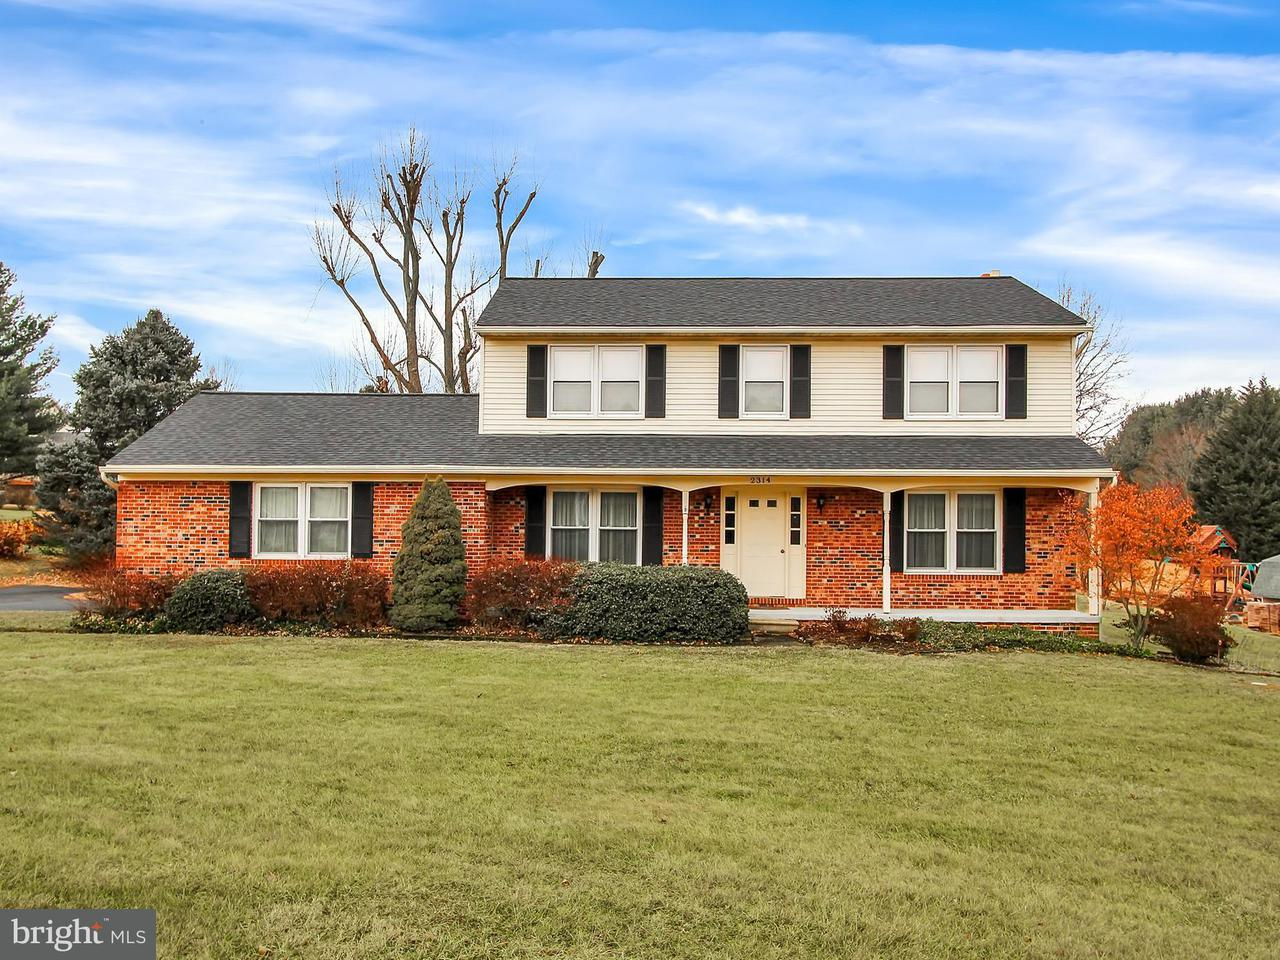 Single Family Home for Sale at 2314 Aquilas Delight 2314 Aquilas Delight Fallston, Maryland 21047 United States